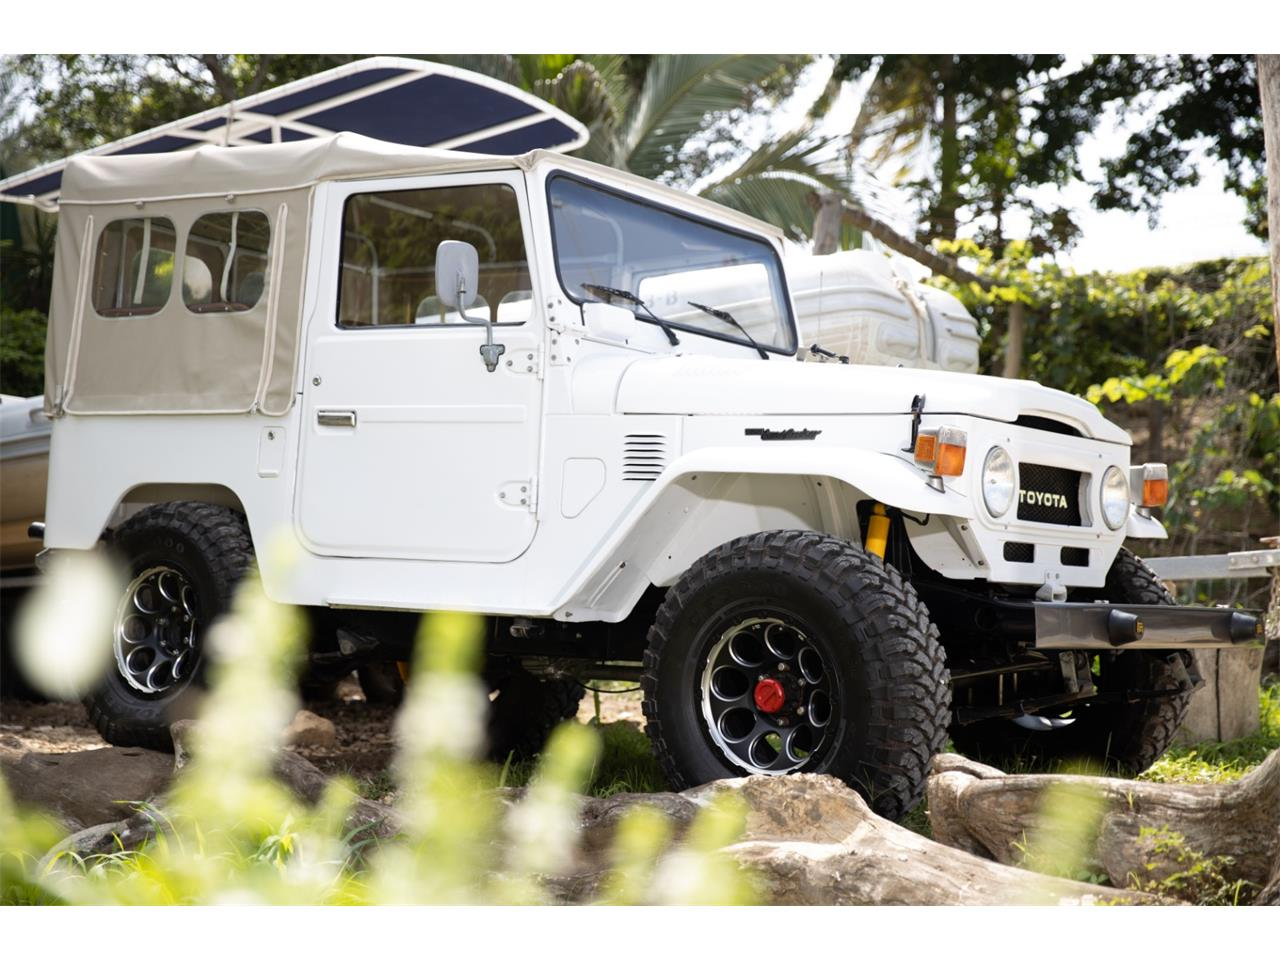 Large Picture of '77 Land Cruiser FJ40 - $44,000.00 Offered by a Private Seller - QHFH